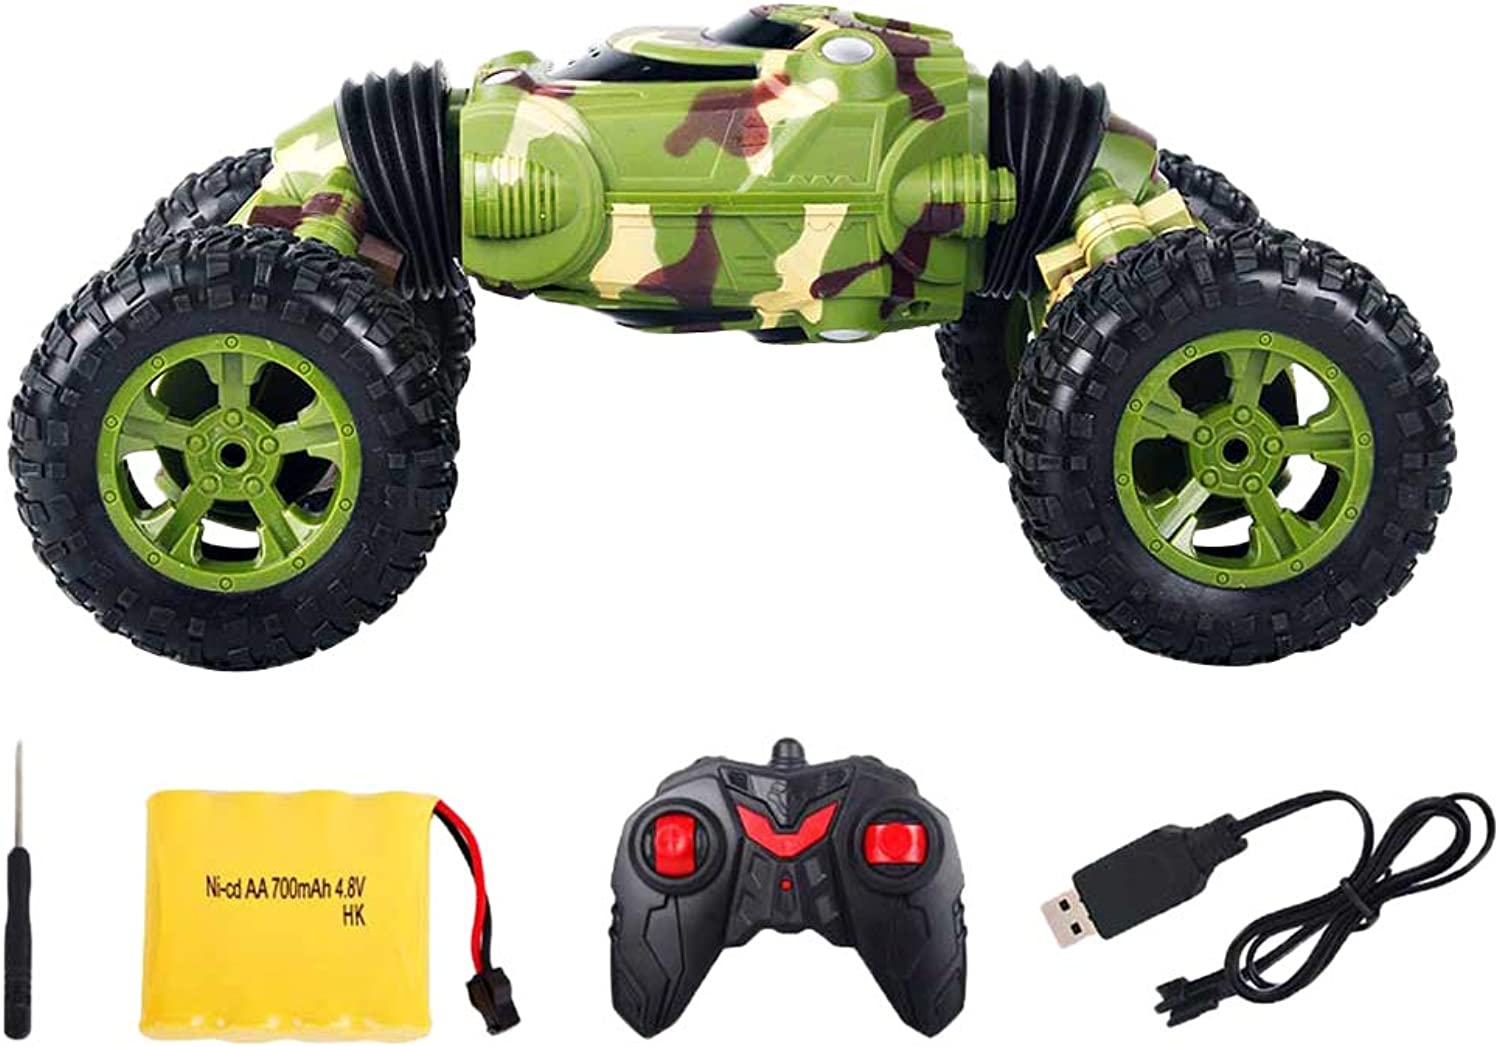 Homyl 1 16 4WD Double-Side RC Stunt Car Vehicle Toy Model Green for Birthday Gift